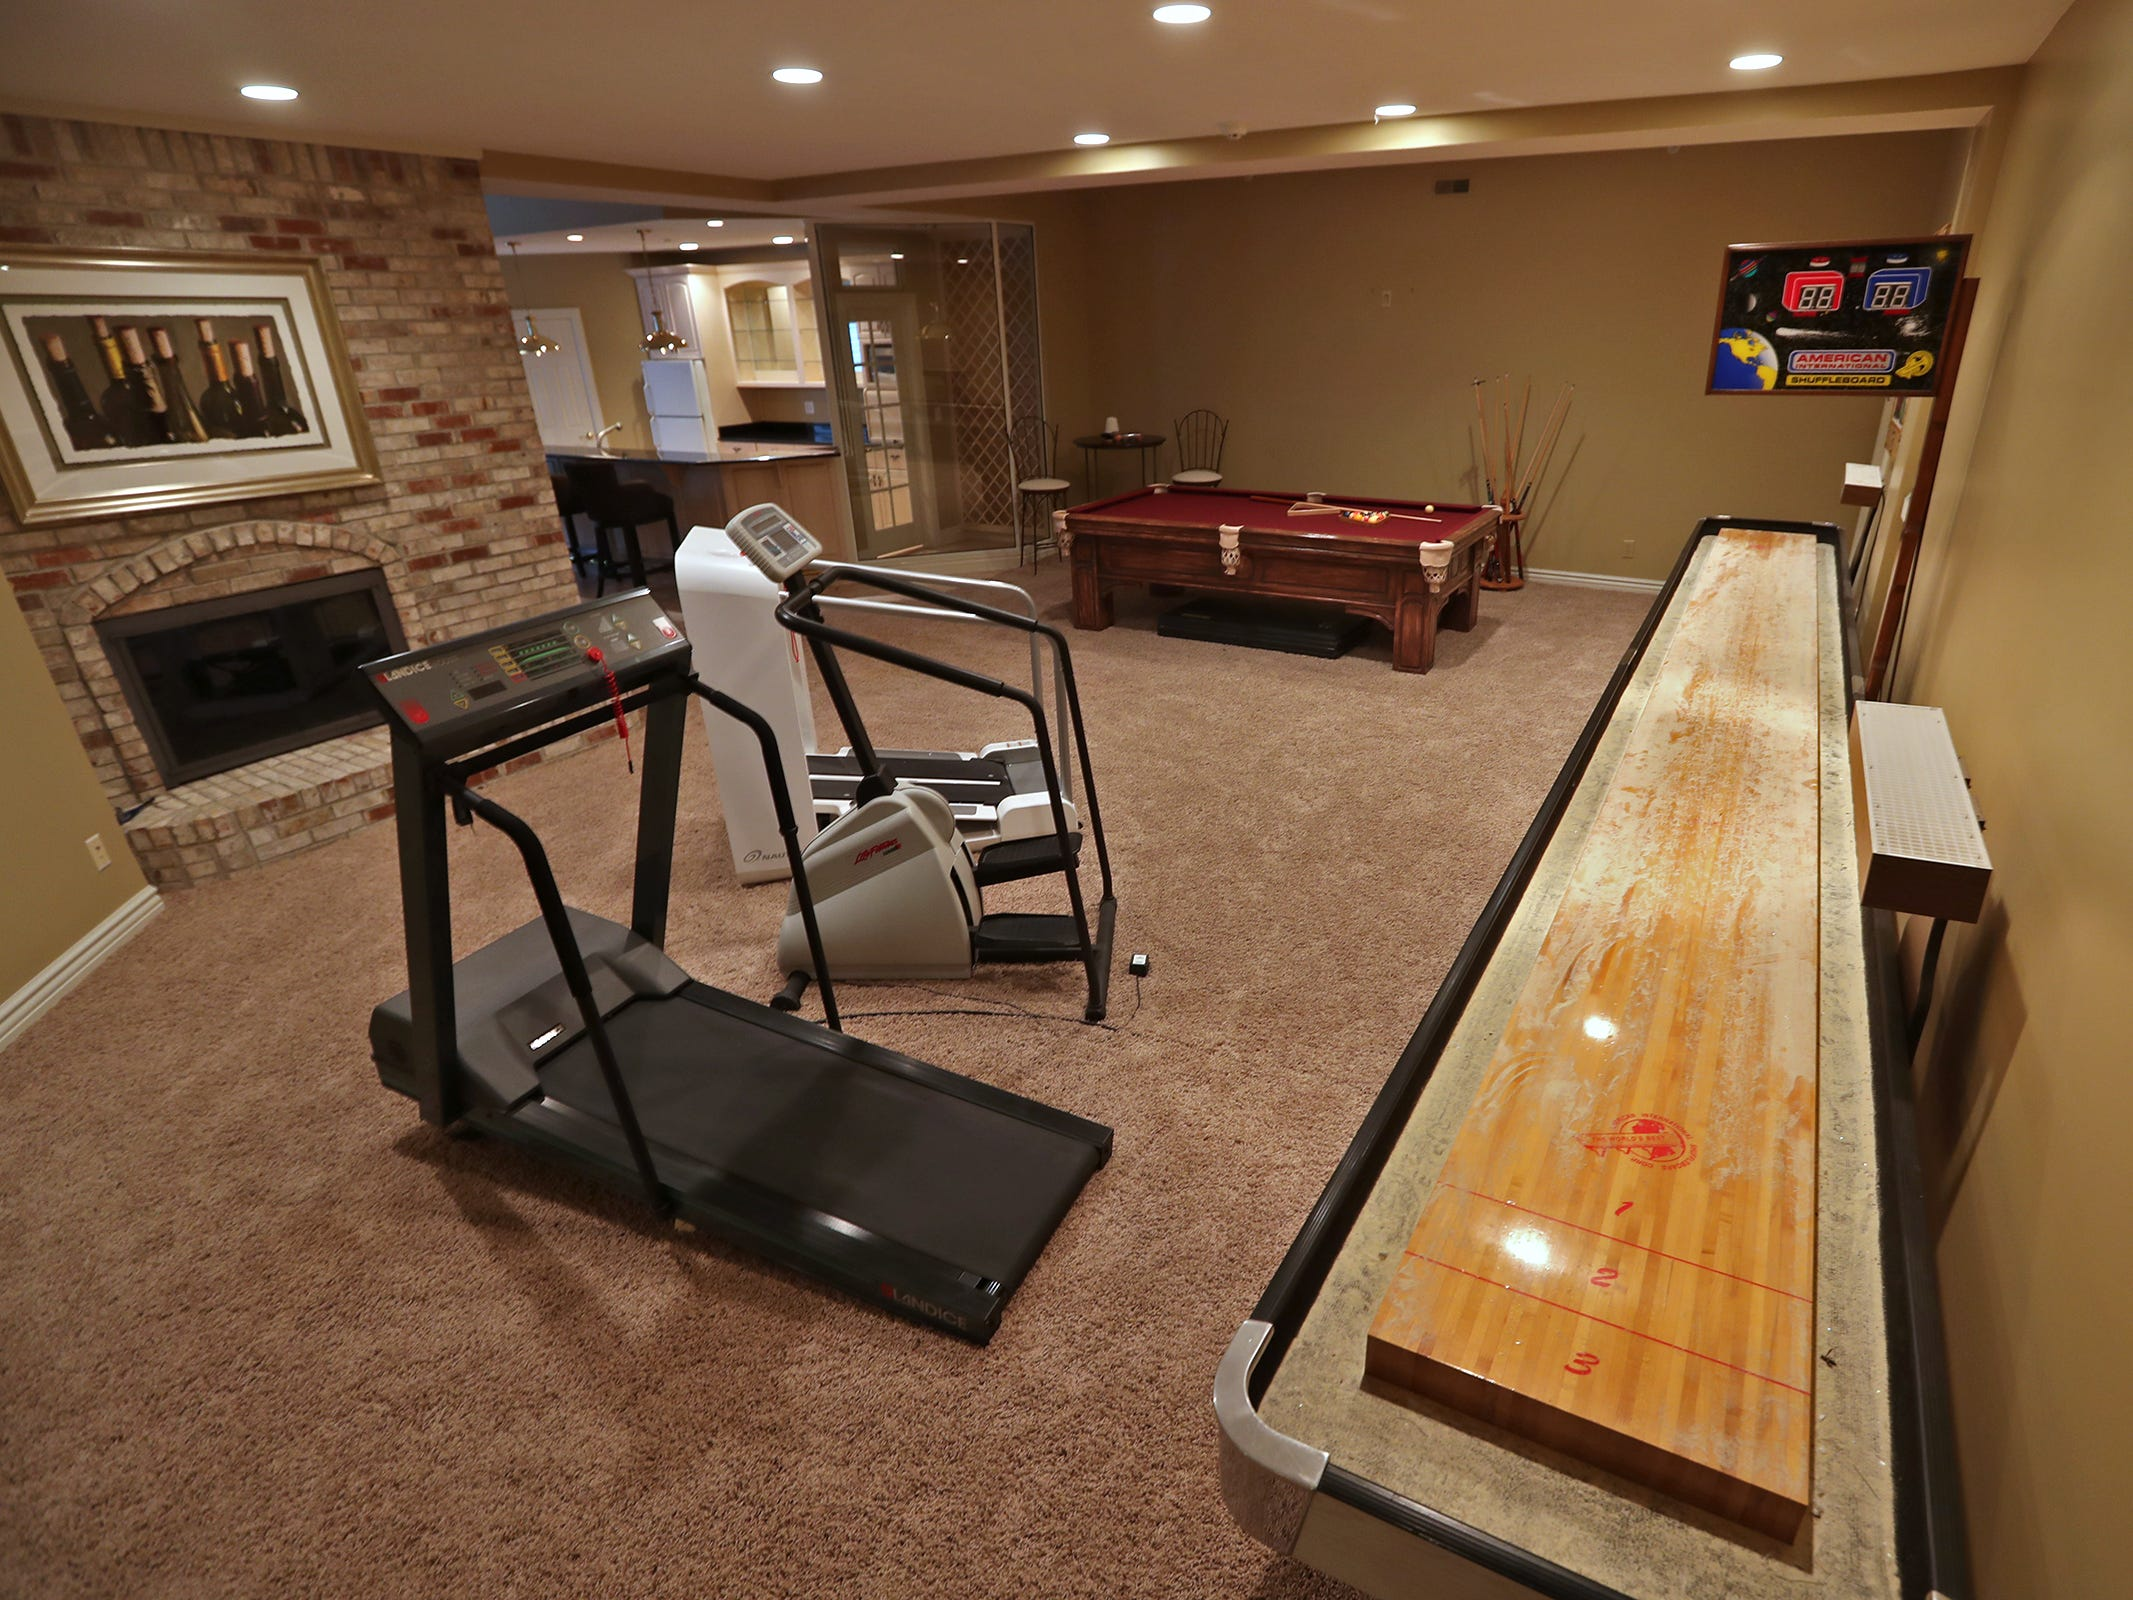 This is an activity room in the basement of the home at 1270 Laurelwood Ct. in Carmel, Friday, Dec. 28, 2018.